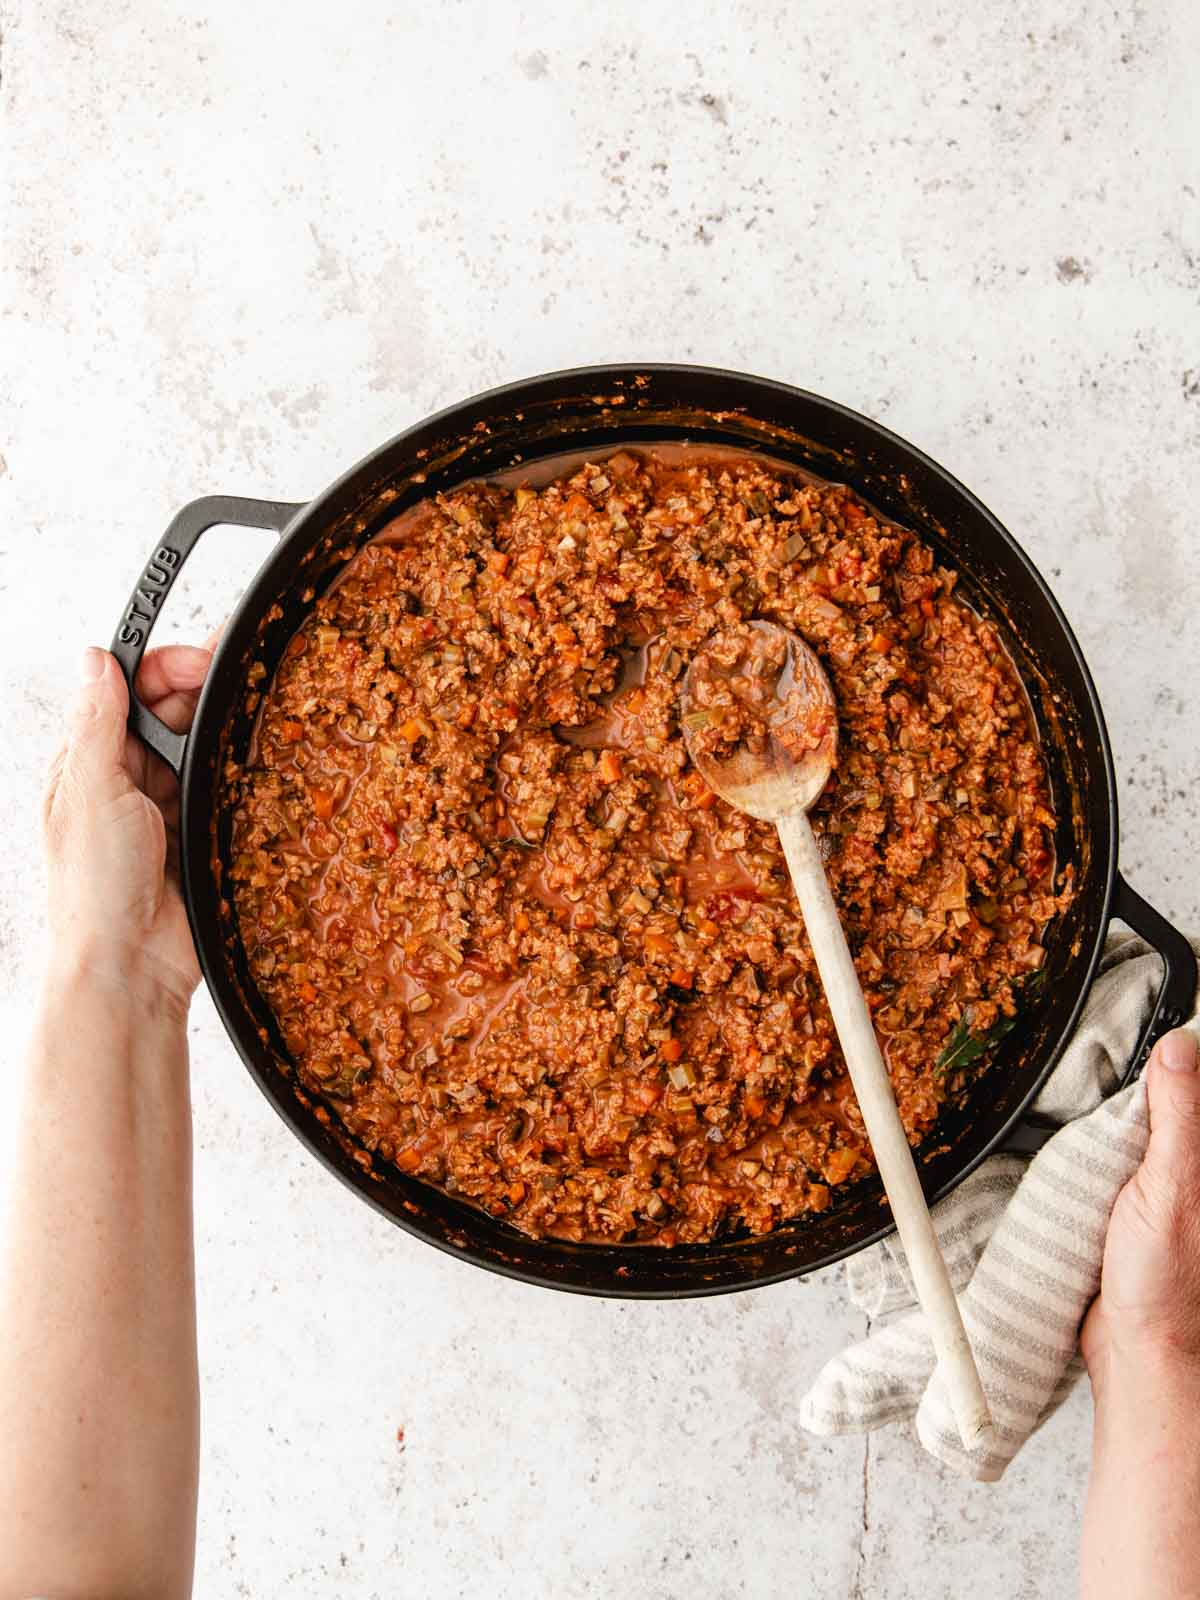 A cooked pan of vegan bolognese sauce.